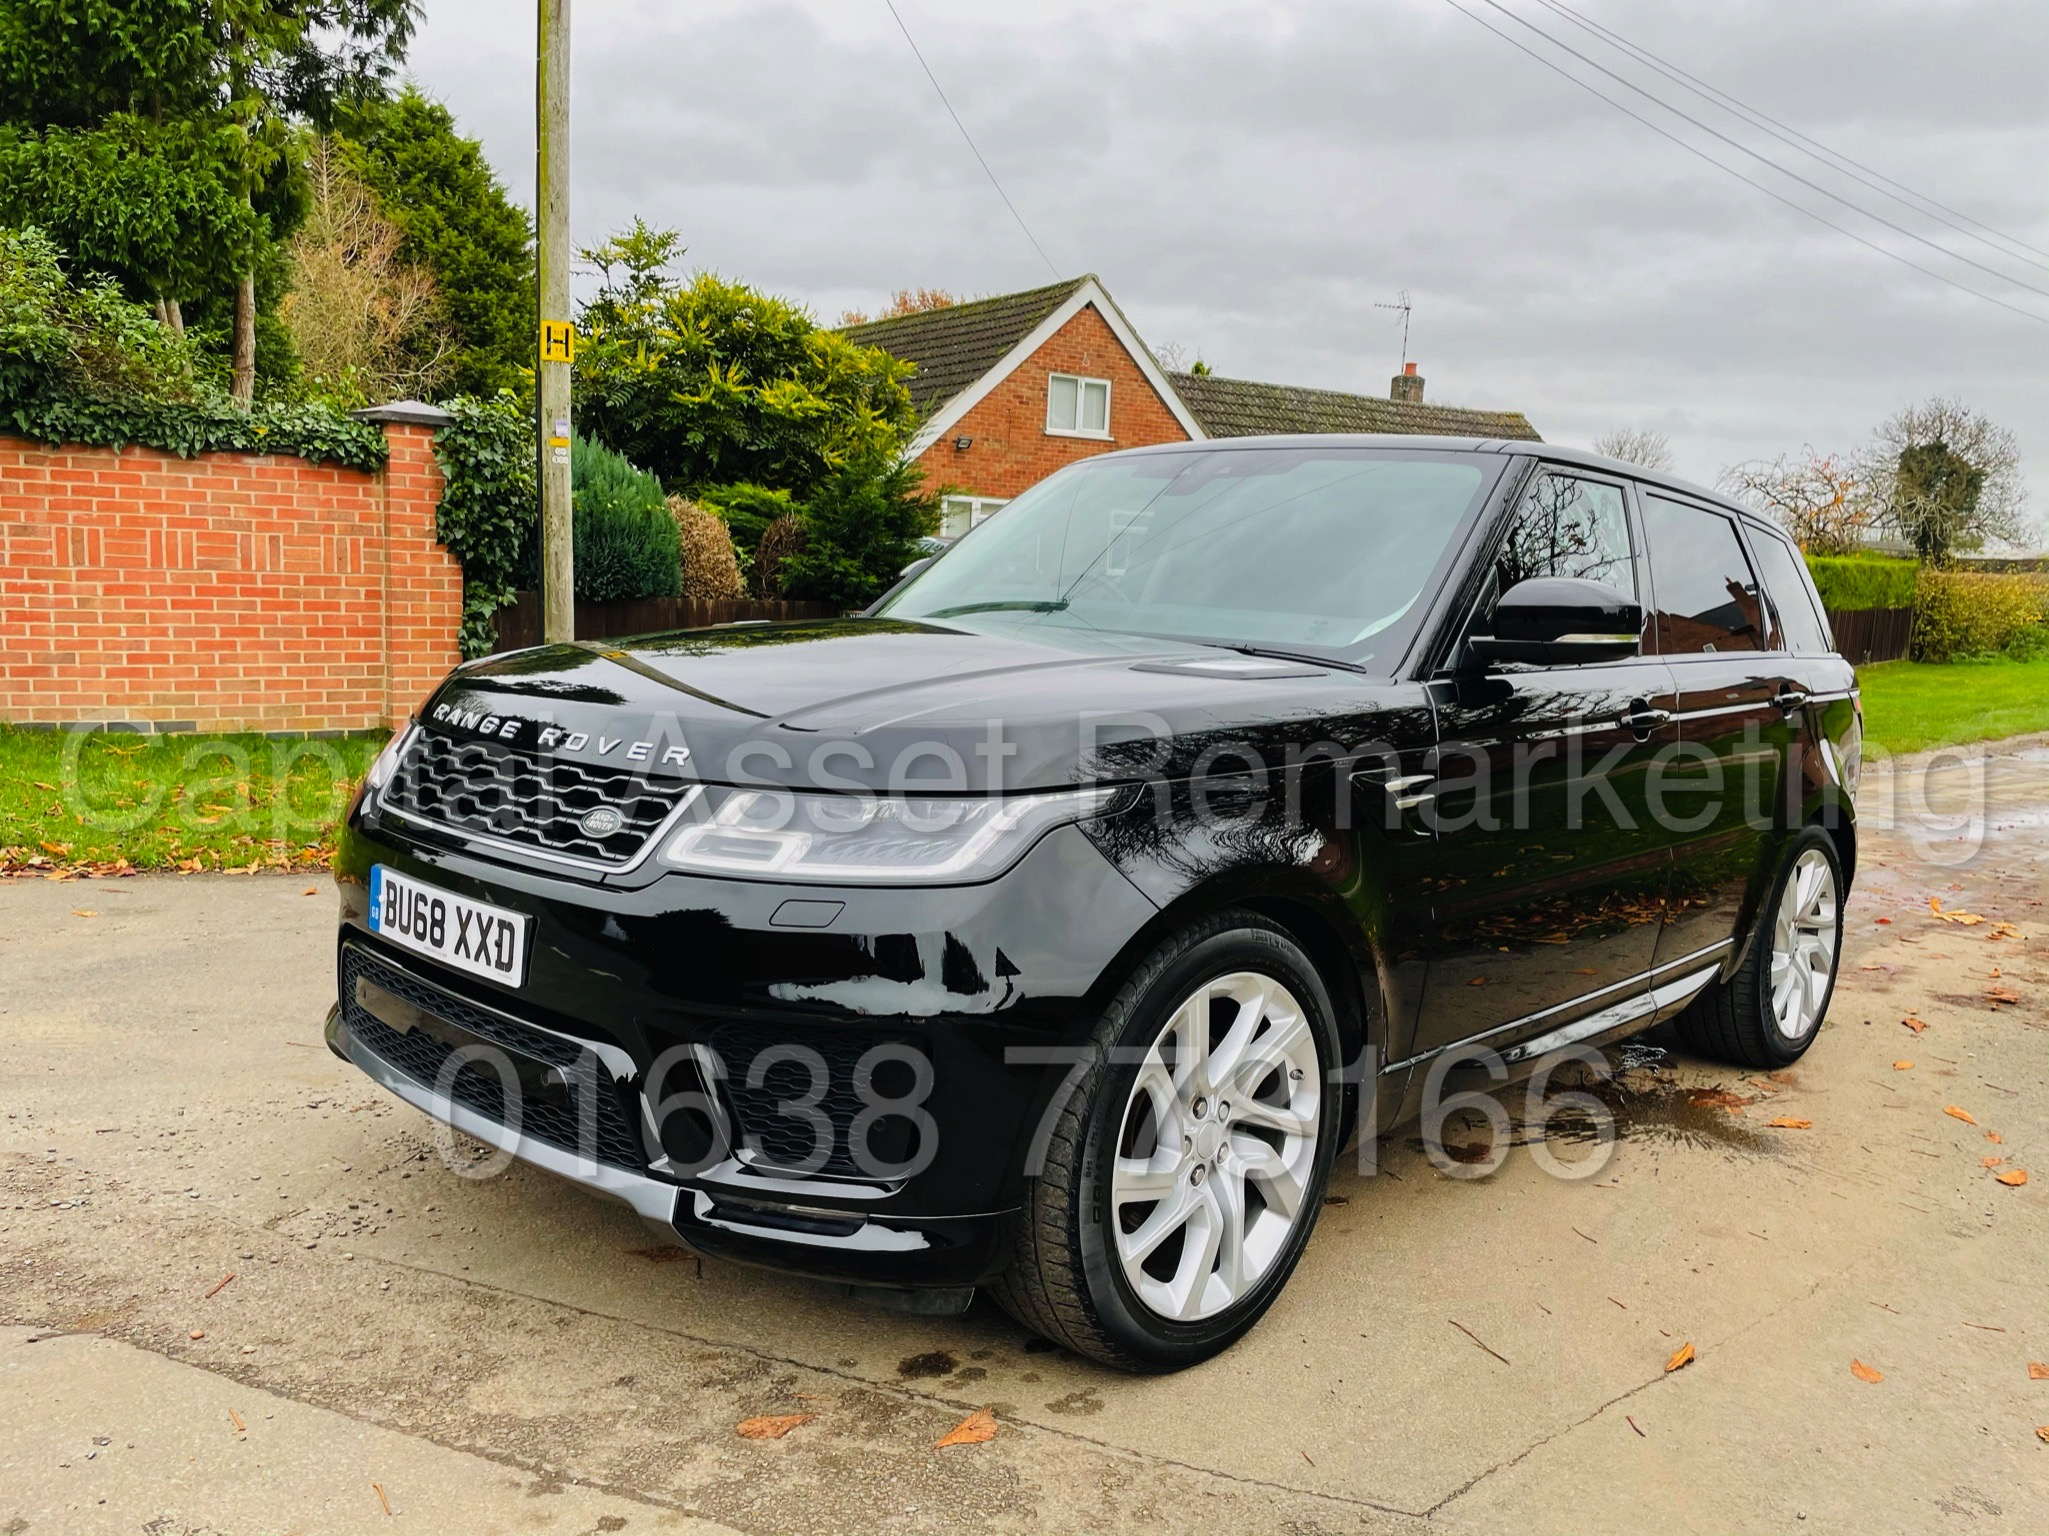 RANGE ROVER SPORT *HSE EDITION* SUV (2019 MODEL) '3.0 SDV6 - 306 BHP - 8 SPEED AUTO' *FULLY LOADED* - Image 5 of 56